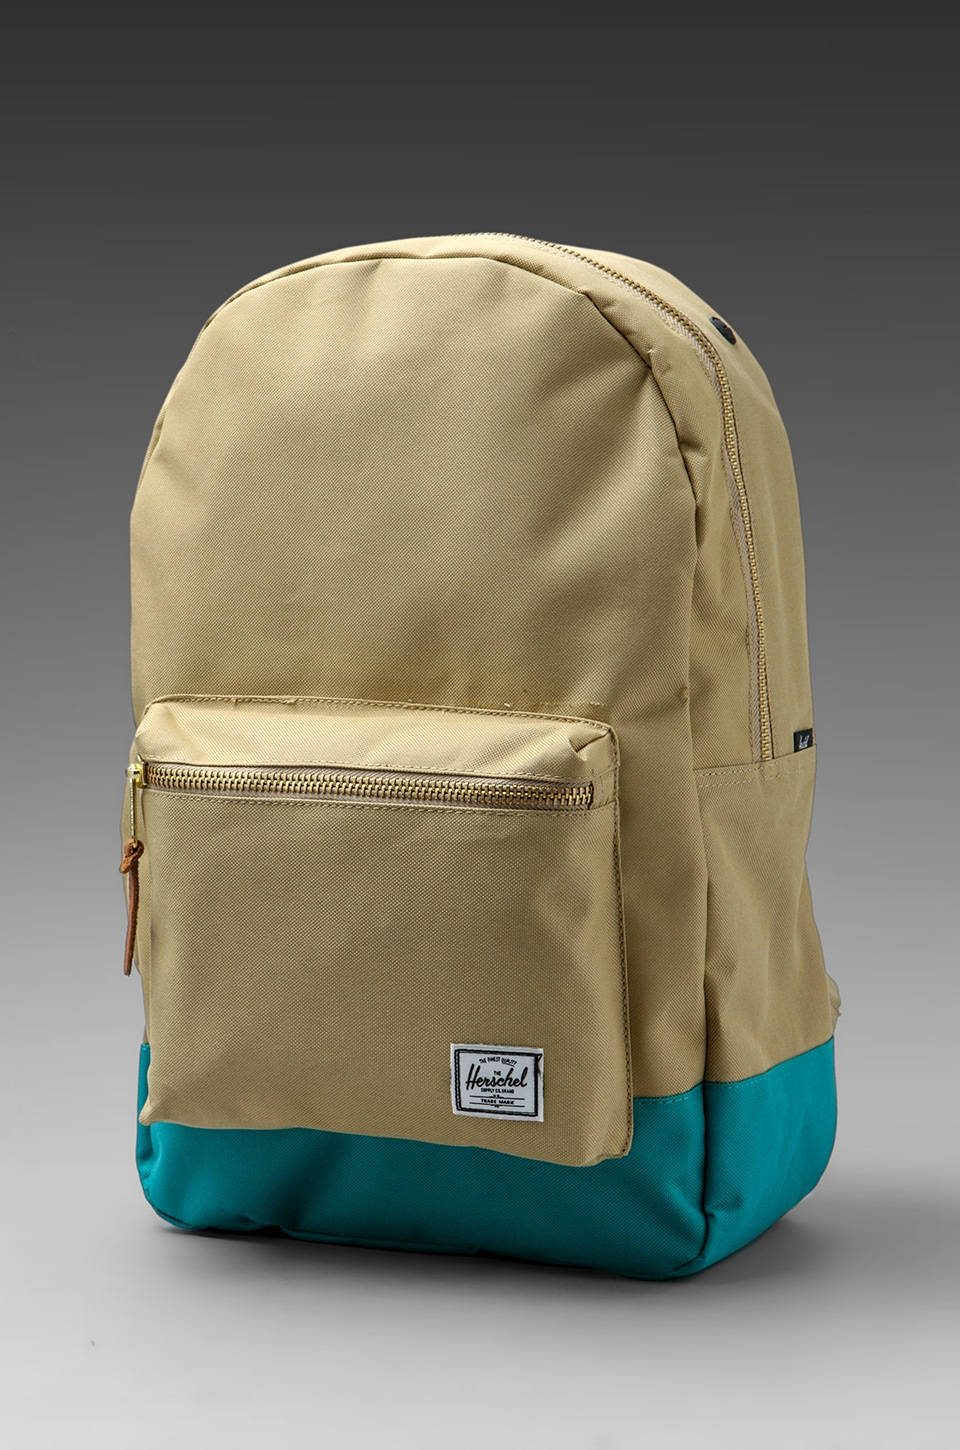 Herschel Supply Co. Settlement Backpack in Khaki/Teal